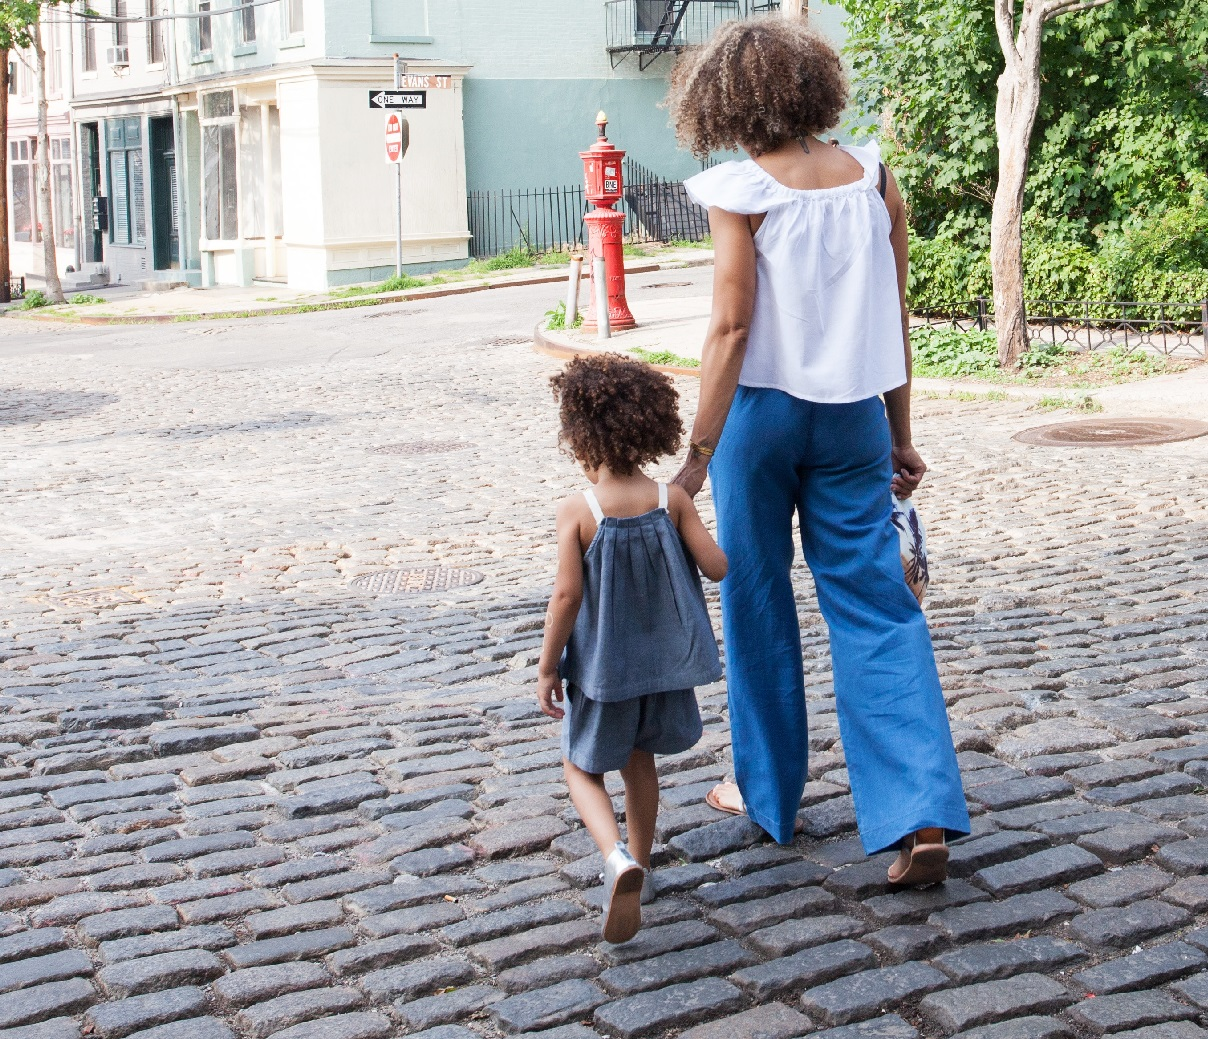 Photo of a person holding a child's hand. They are walking on a cobble stone street.